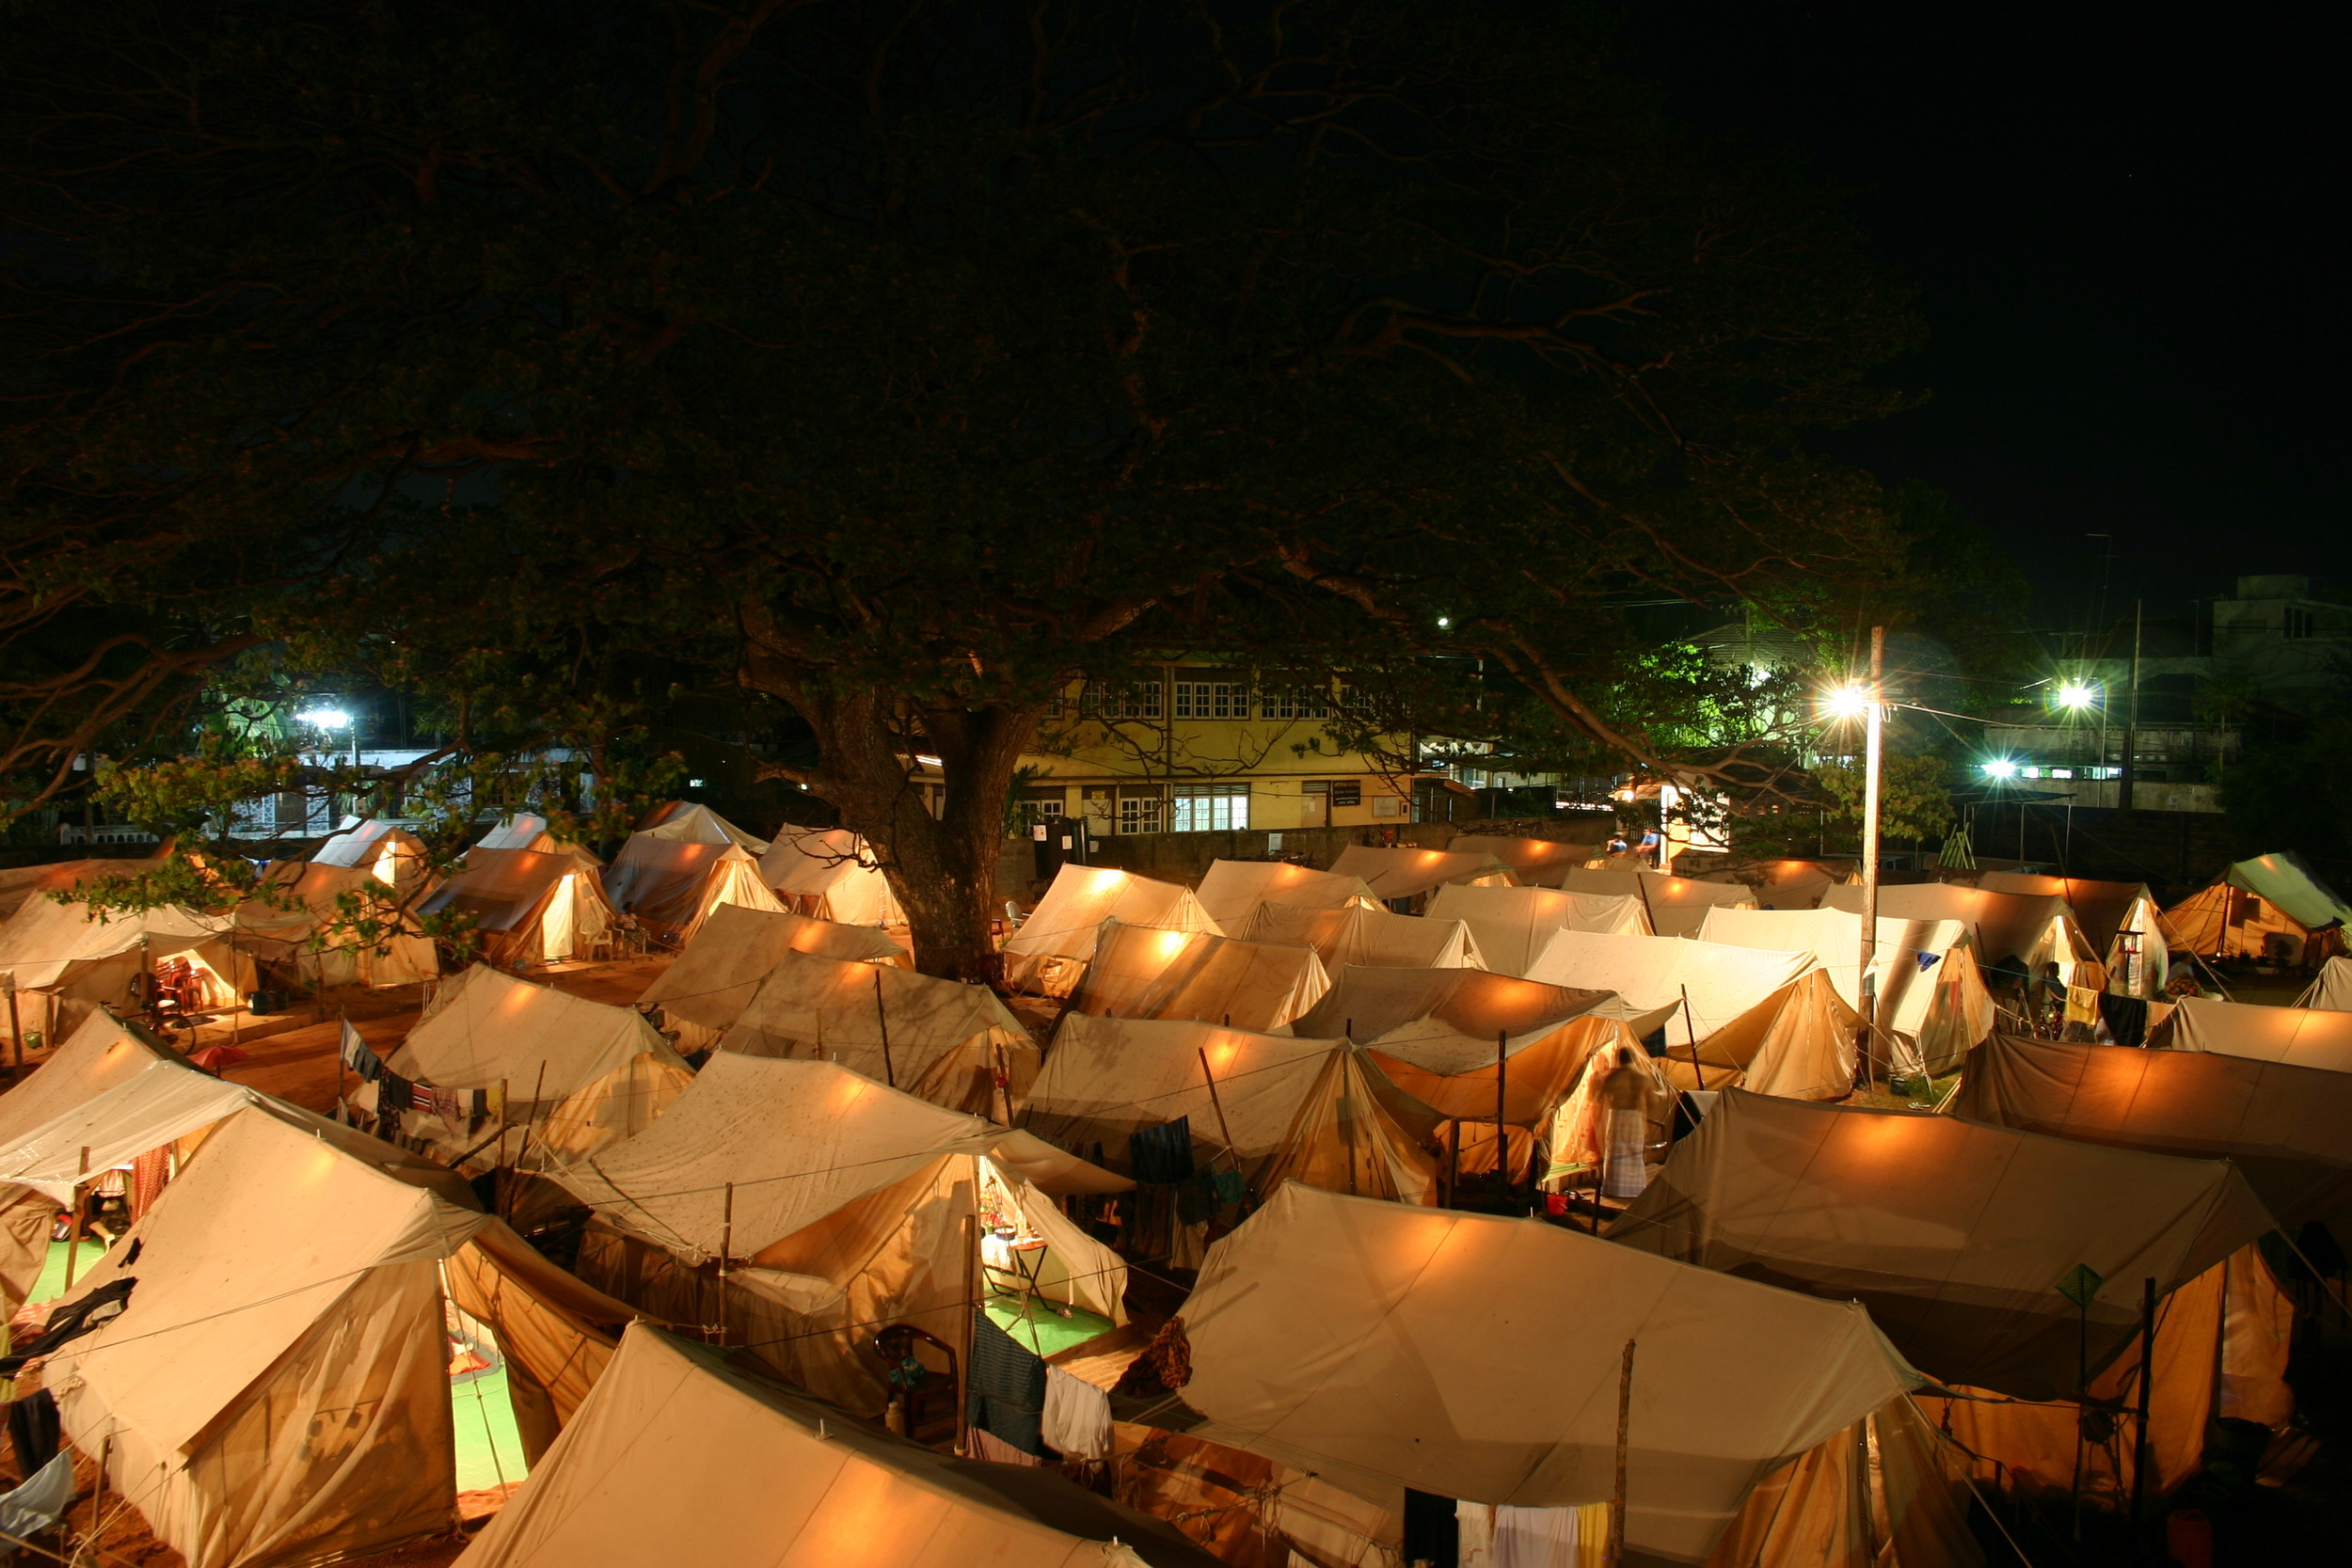 March 2005: Negombo, Tent Camp